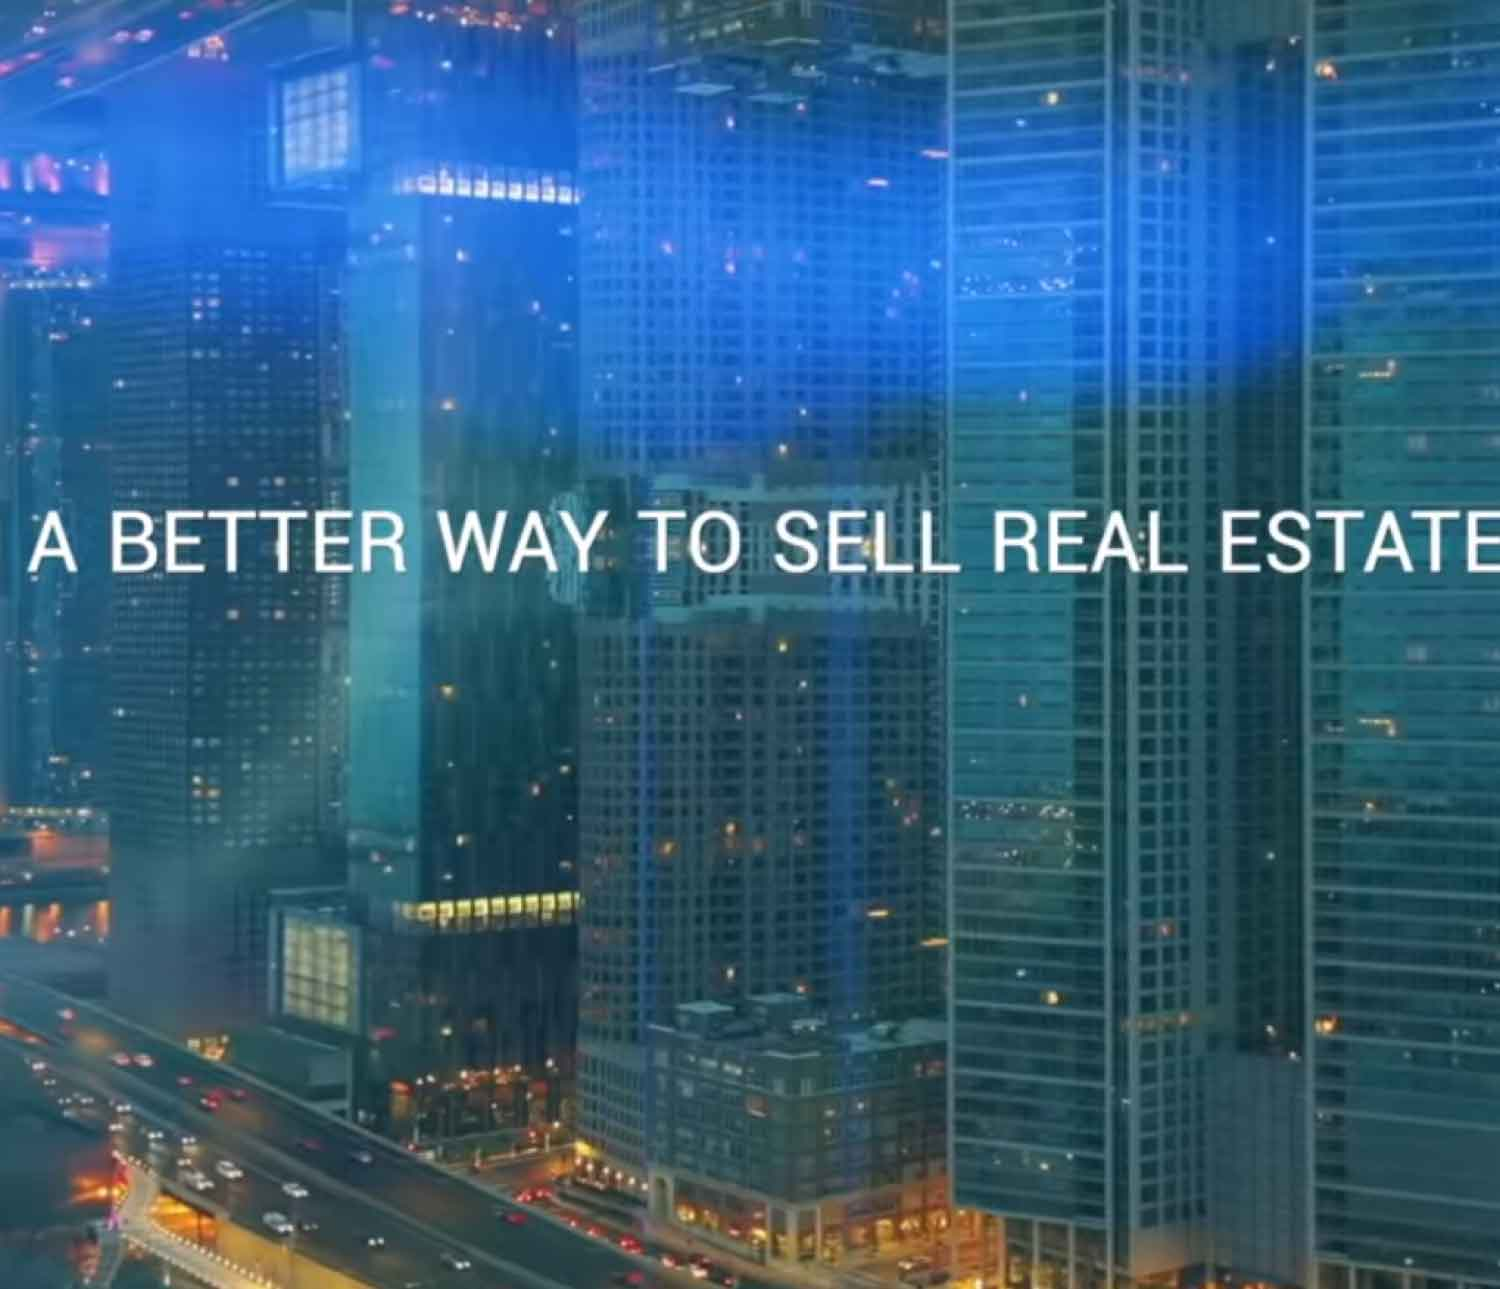 A better way to sell real estate image